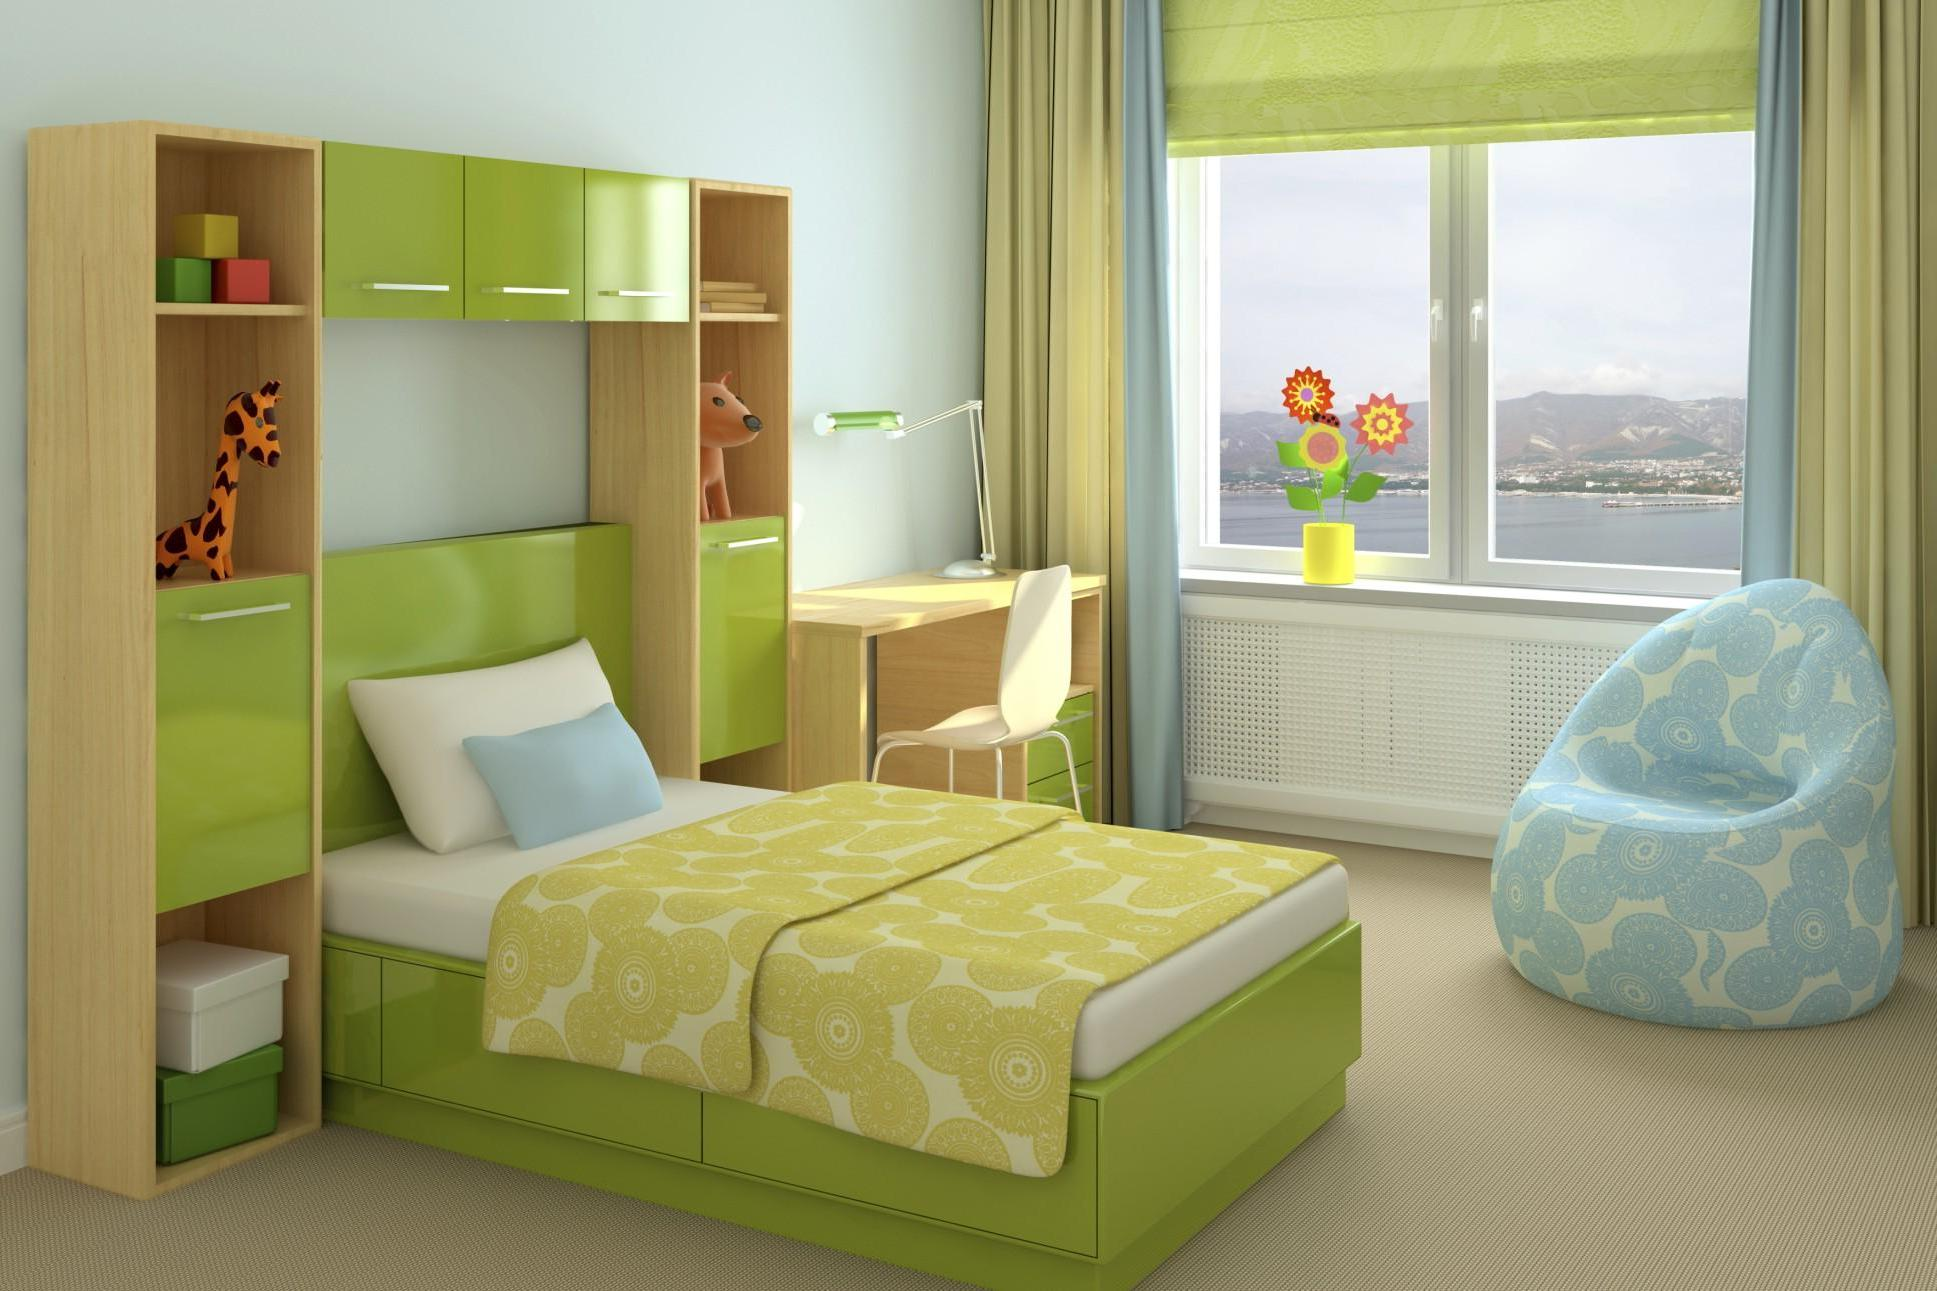 Choose Green Kids Beds with Storage and Fluffy Mattress beside Oak Desk and White Chair near Blue Bean Bag